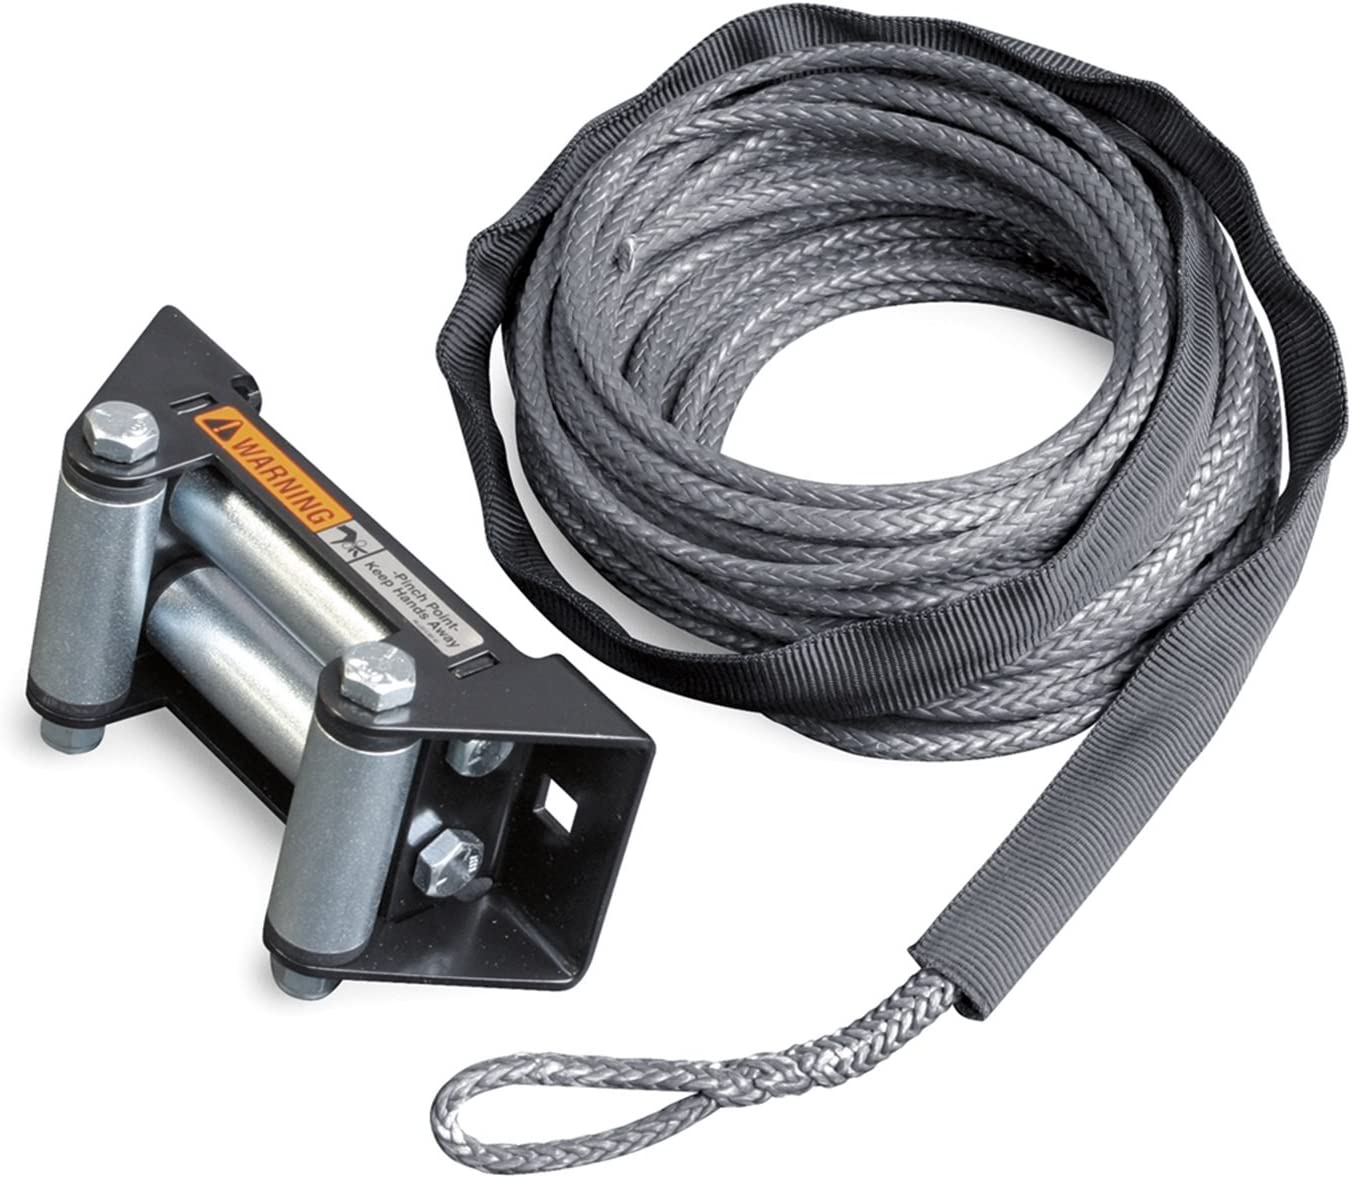 WARN Synthetic Rope Replacement Kit